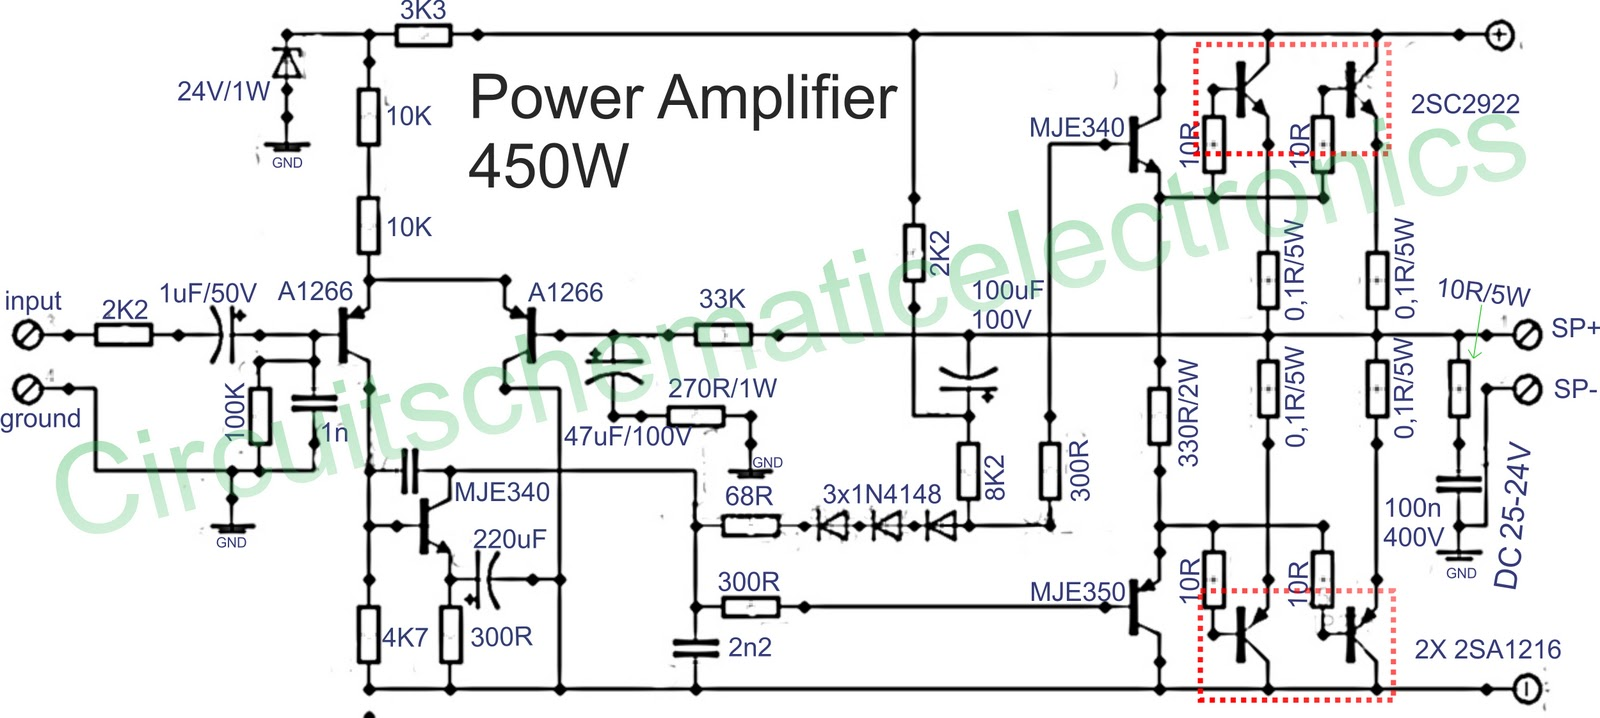 100w subwoofer amplifier circuit diagram 2006 f150 starter relay wiring tda2050 best library 450w power